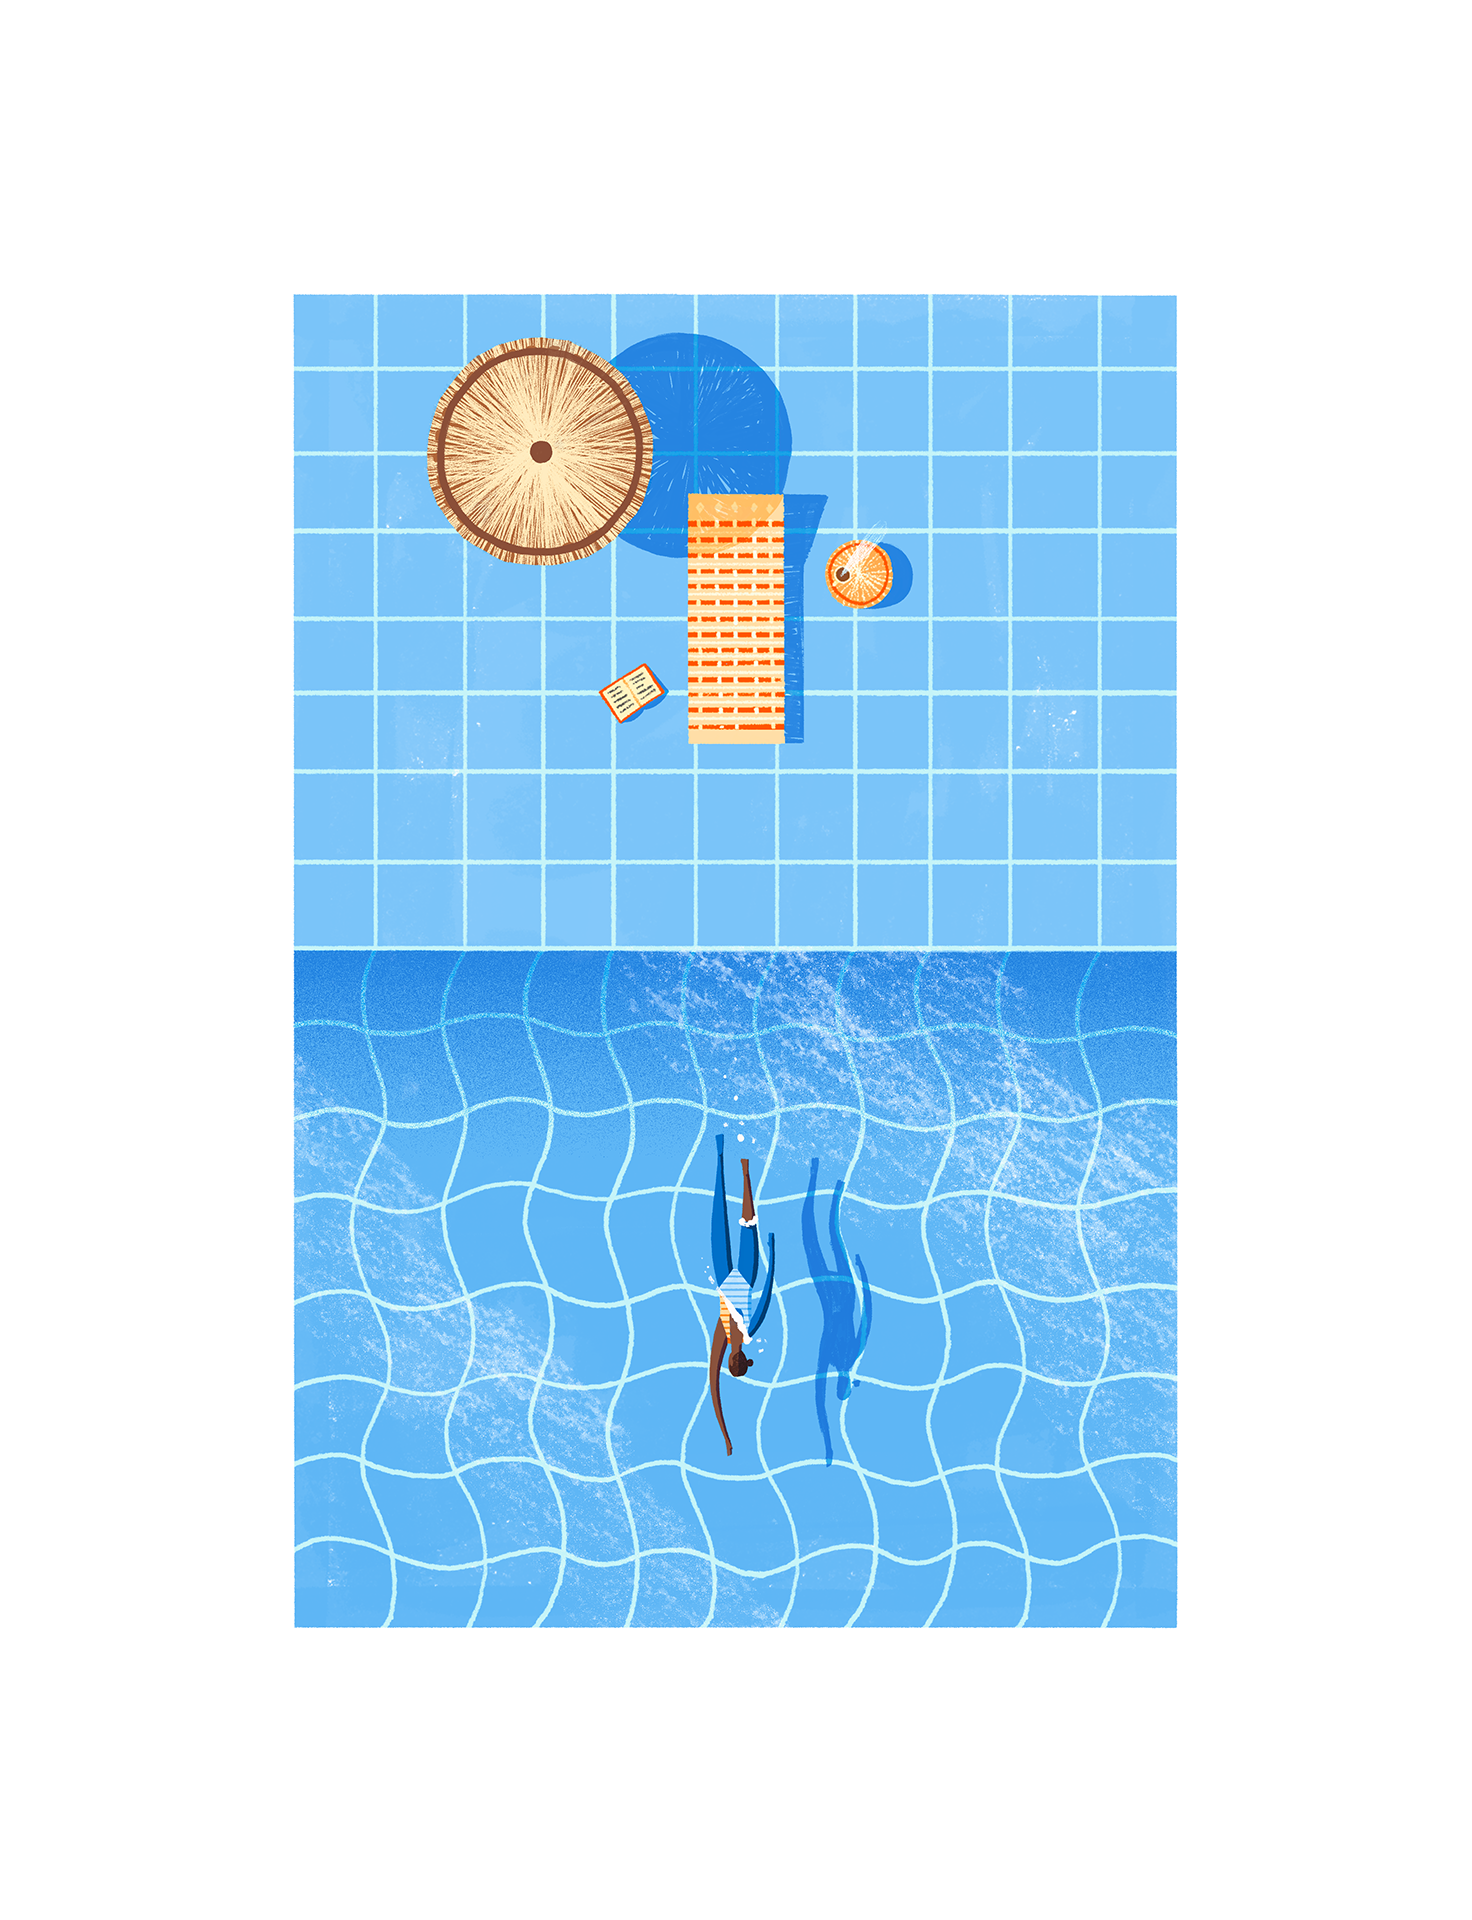 'Reader At The Pool' © Jonty Howley Illustration